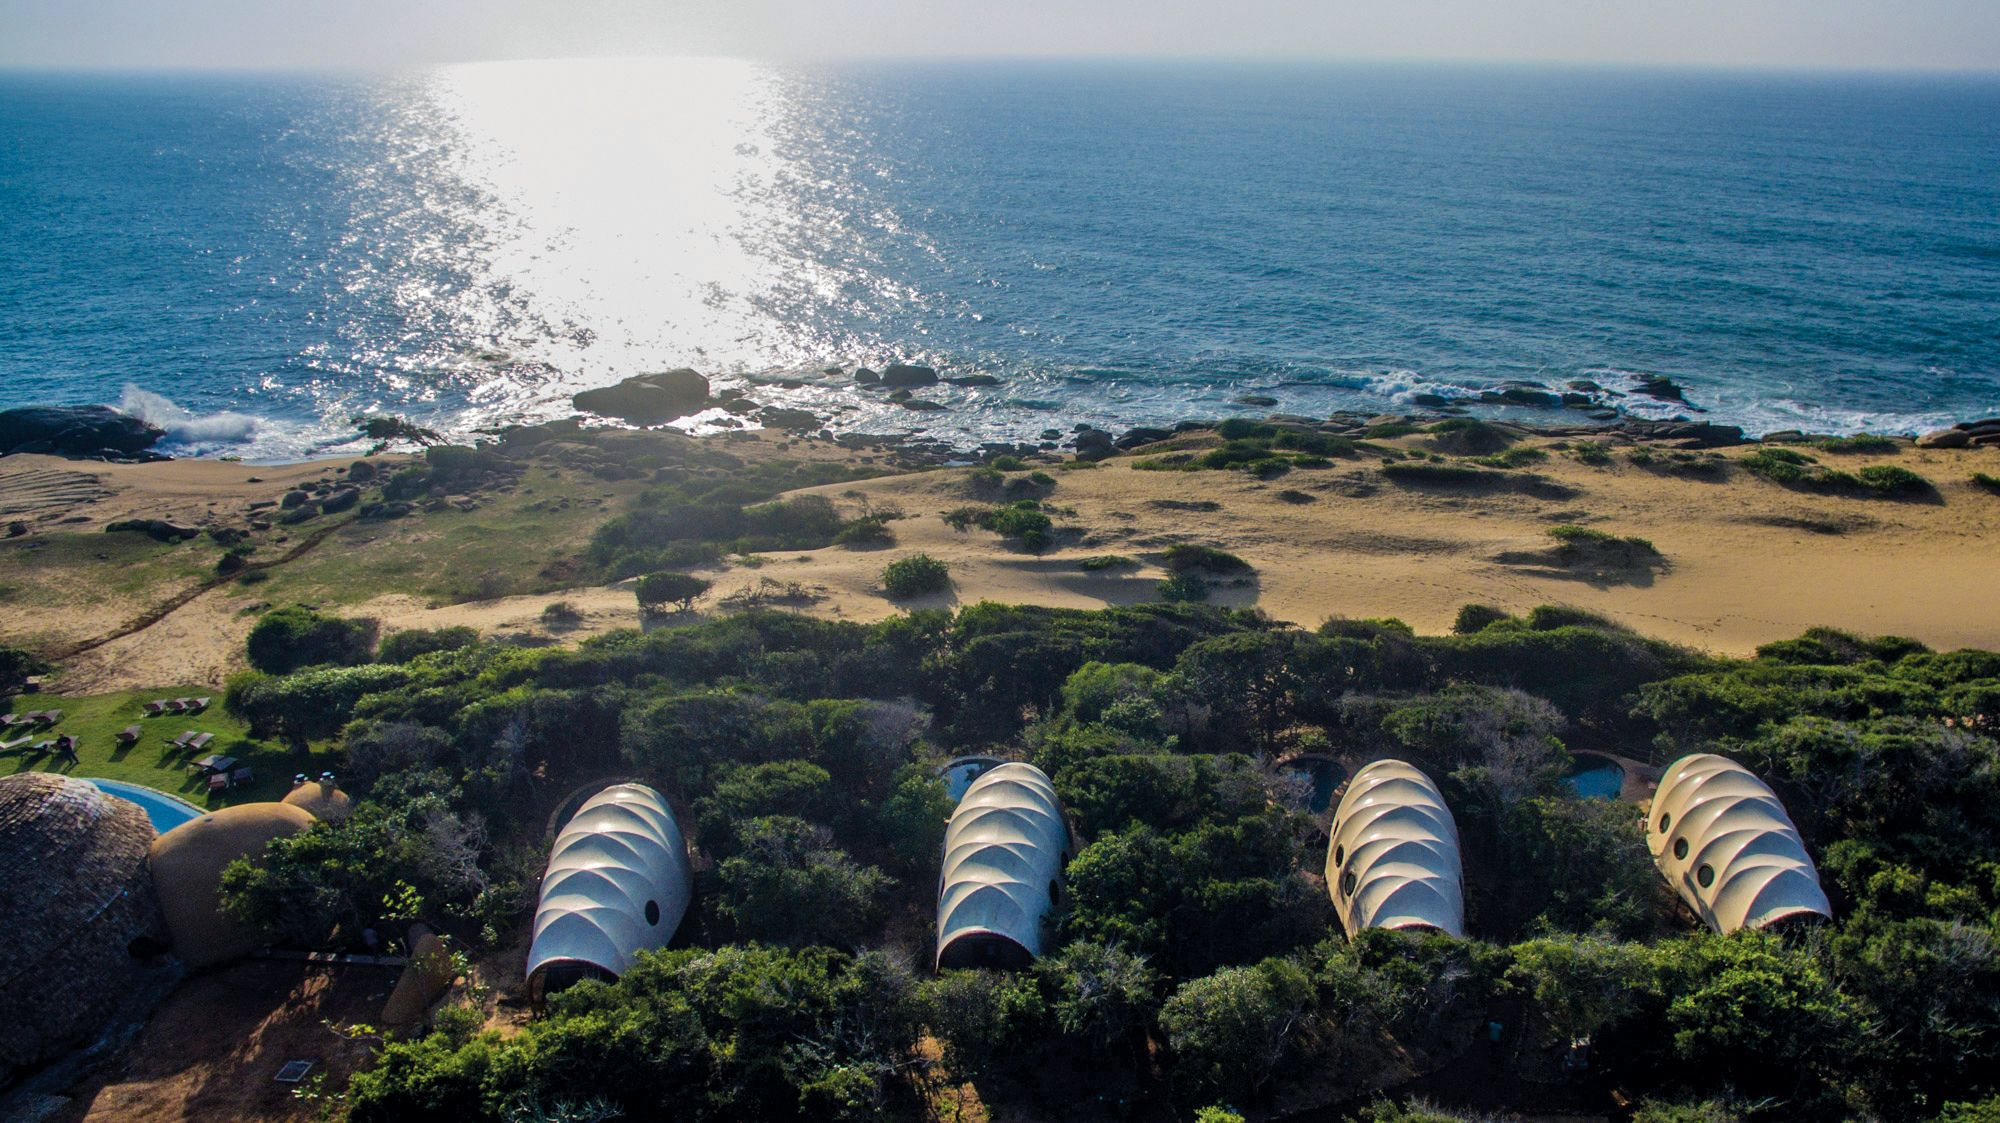 Glamping Destinations With Cutting-edge Design Across The Globe